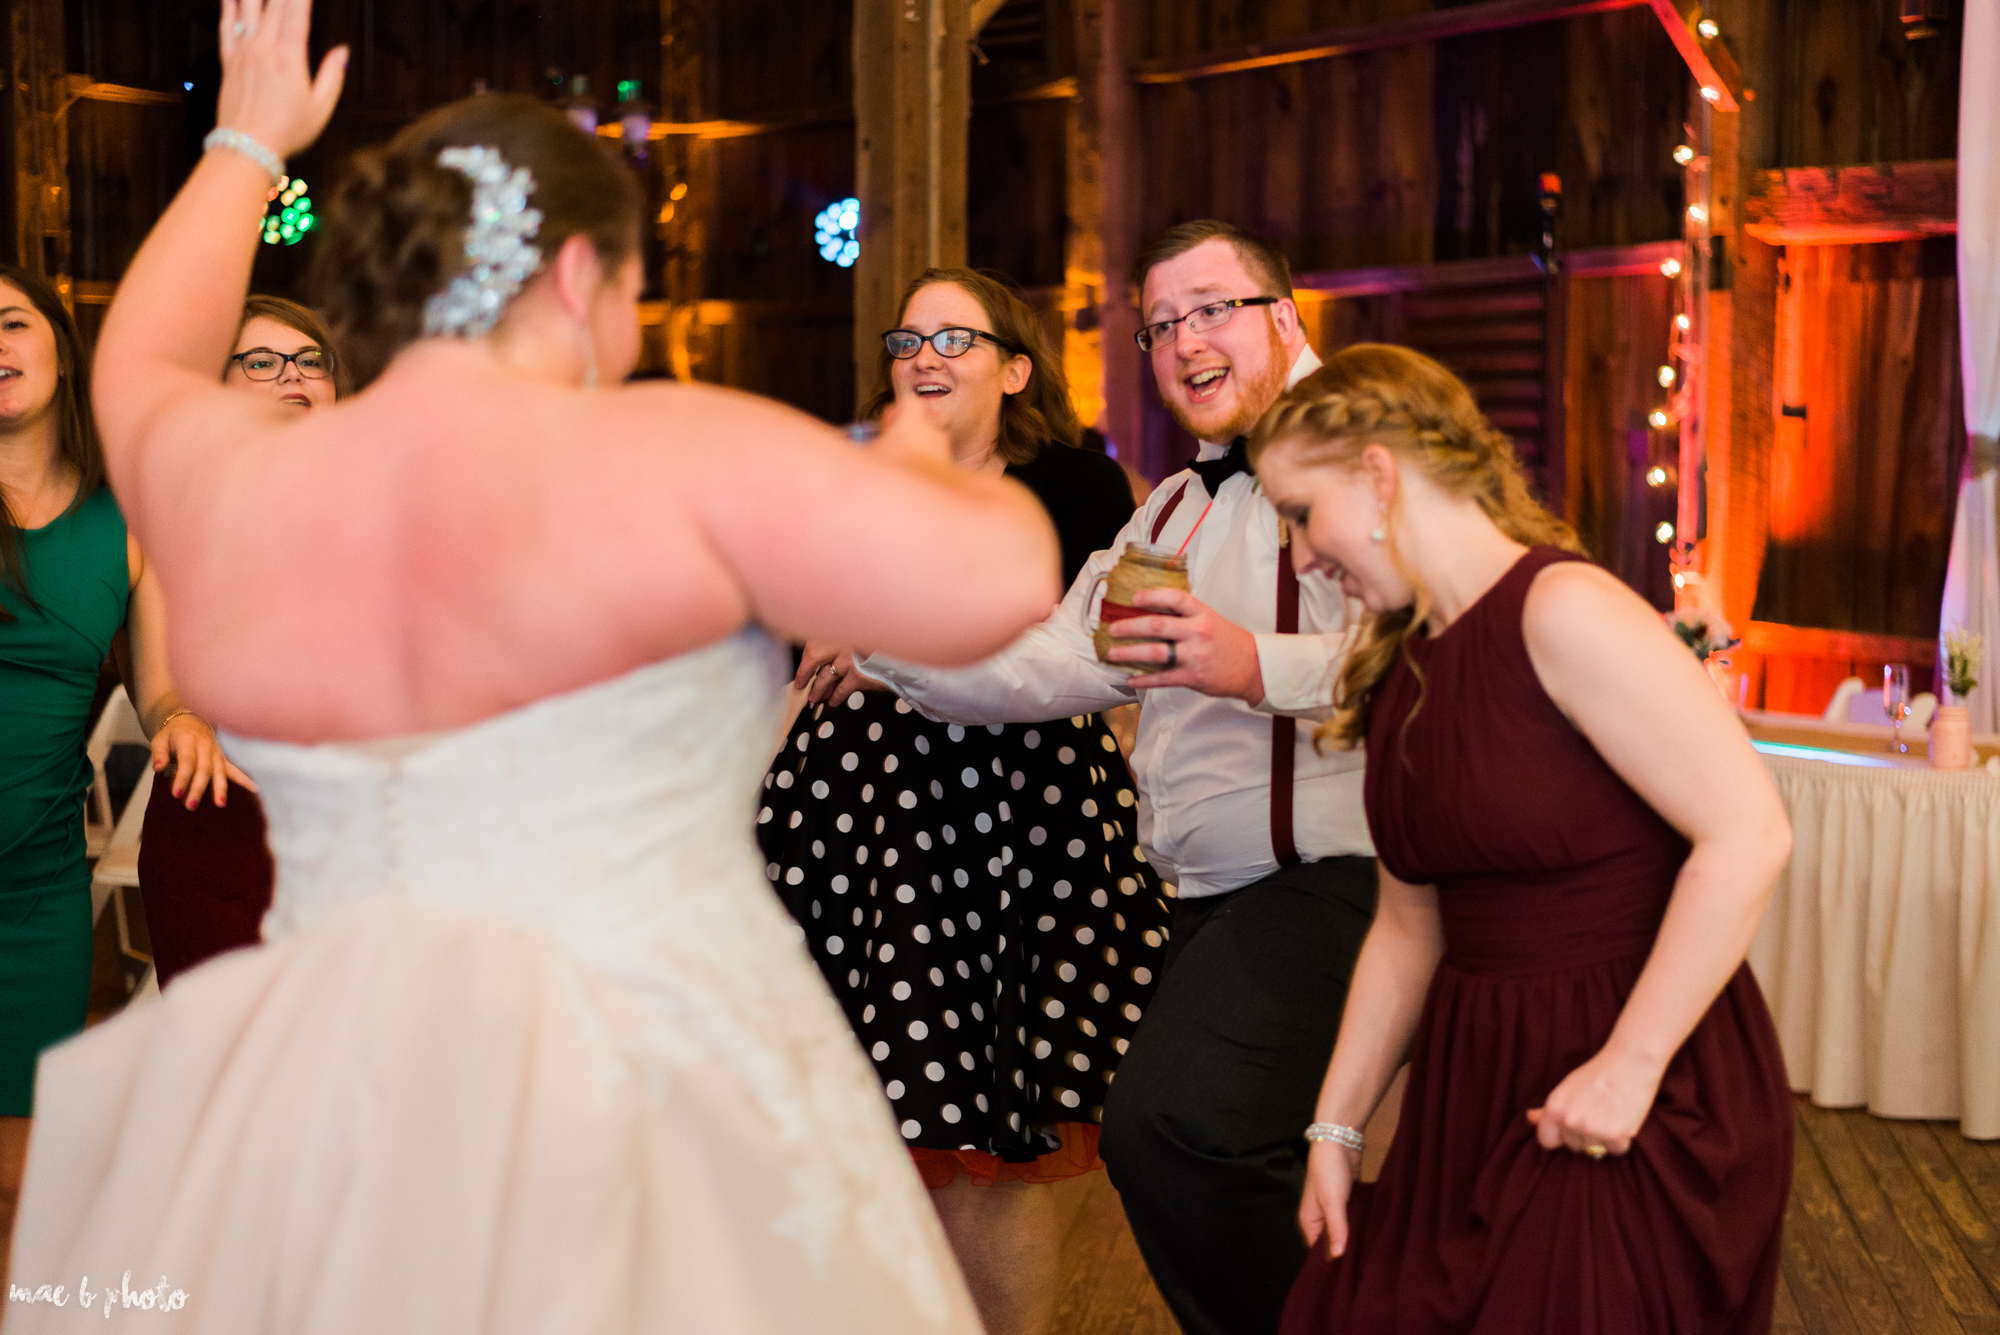 Amber & Kyle's Rustic Barn Wedding at SNPJ in Enon Valley, PA by Mae B Photo-97.jpg